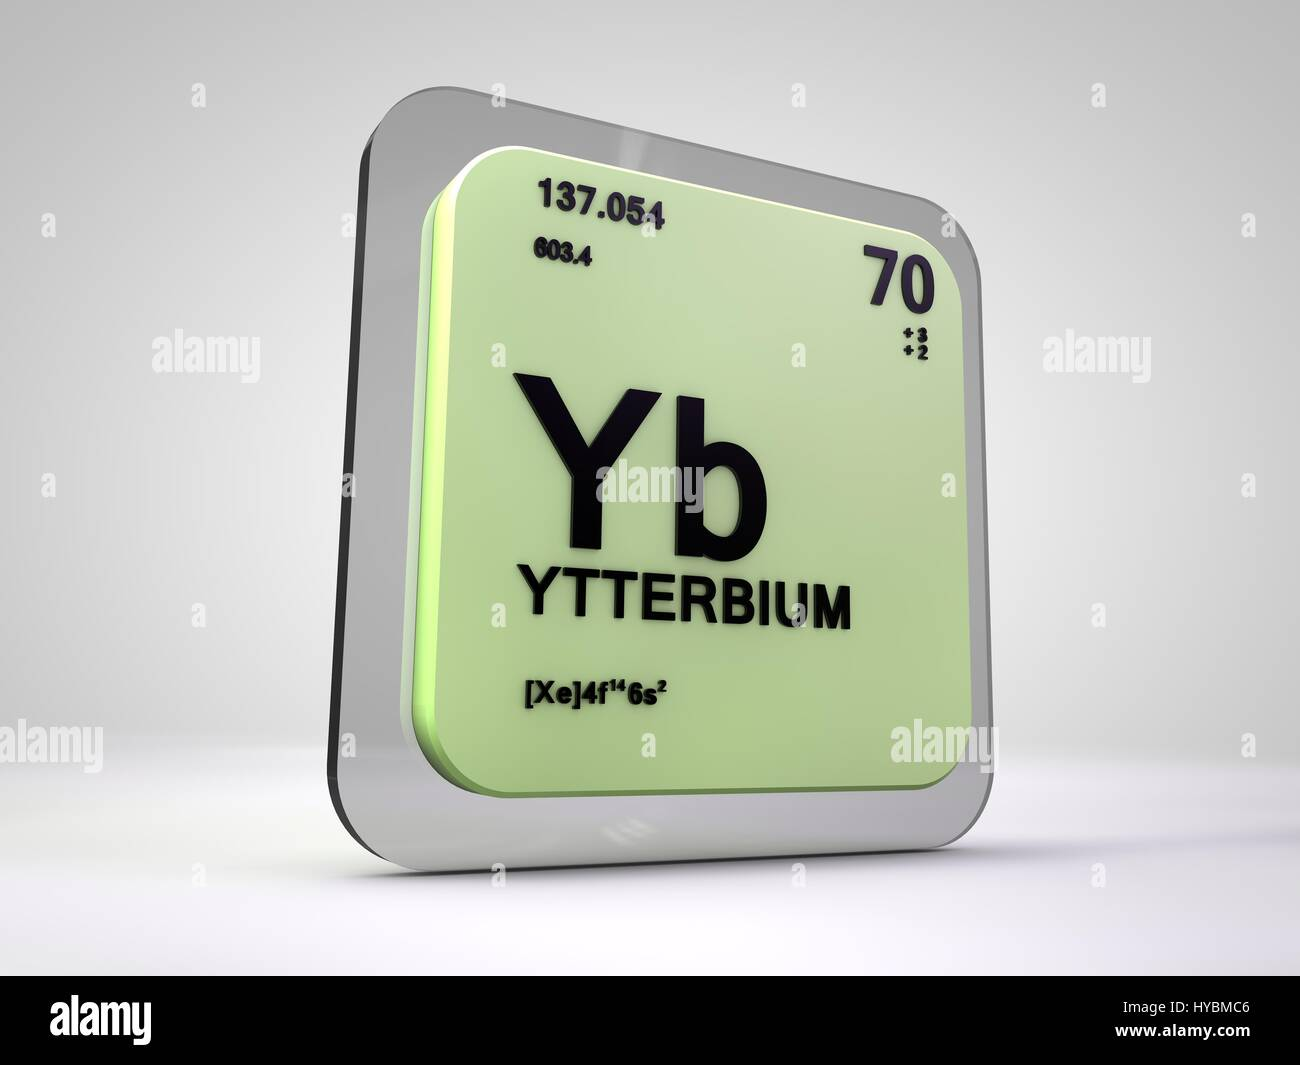 Ytterbium yb chemical element periodic table 3d render stock ytterbium yb chemical element periodic table 3d render urtaz Images